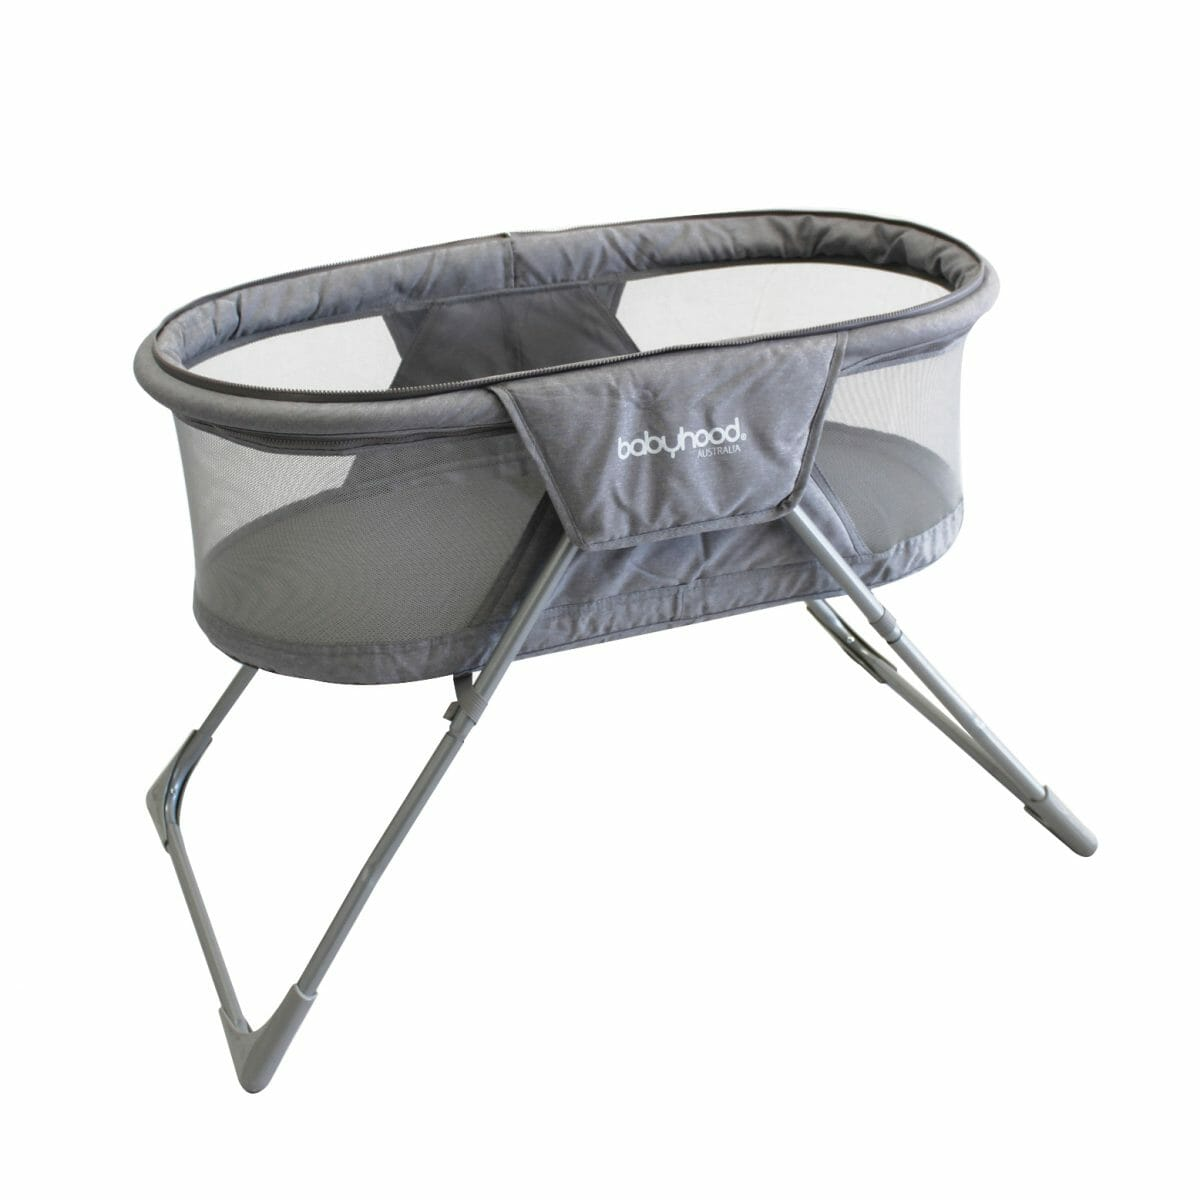 Babyhood Travel Bassinet Angle Shade Removed